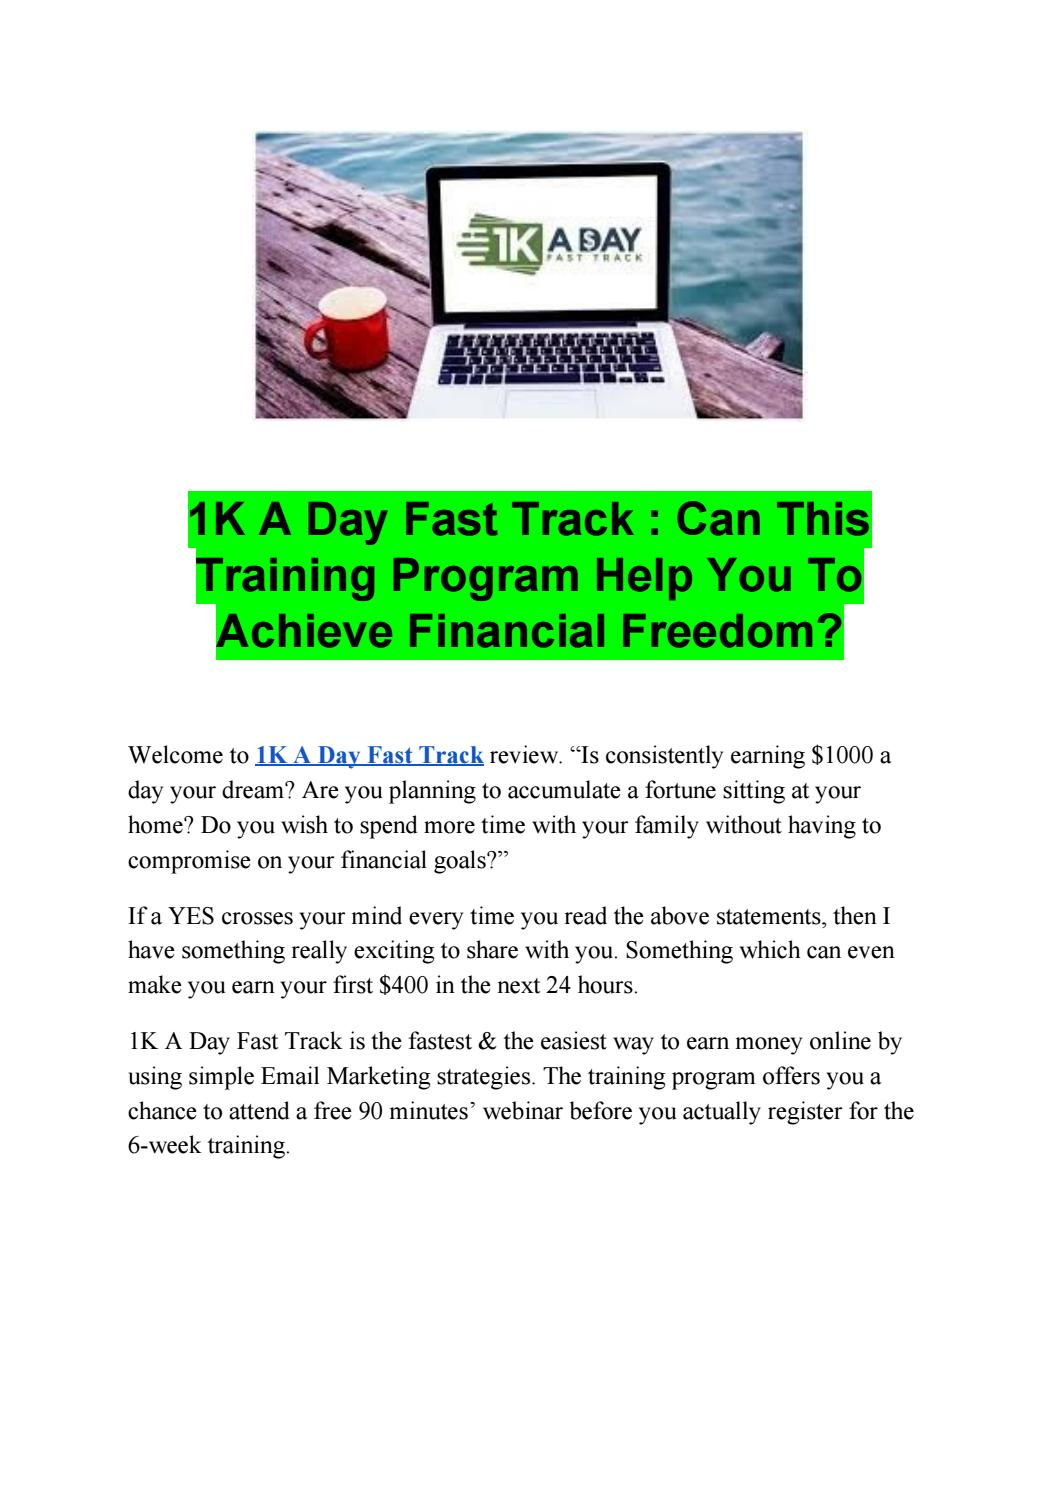 Training Program 1k A Day Fast Track On Youtube